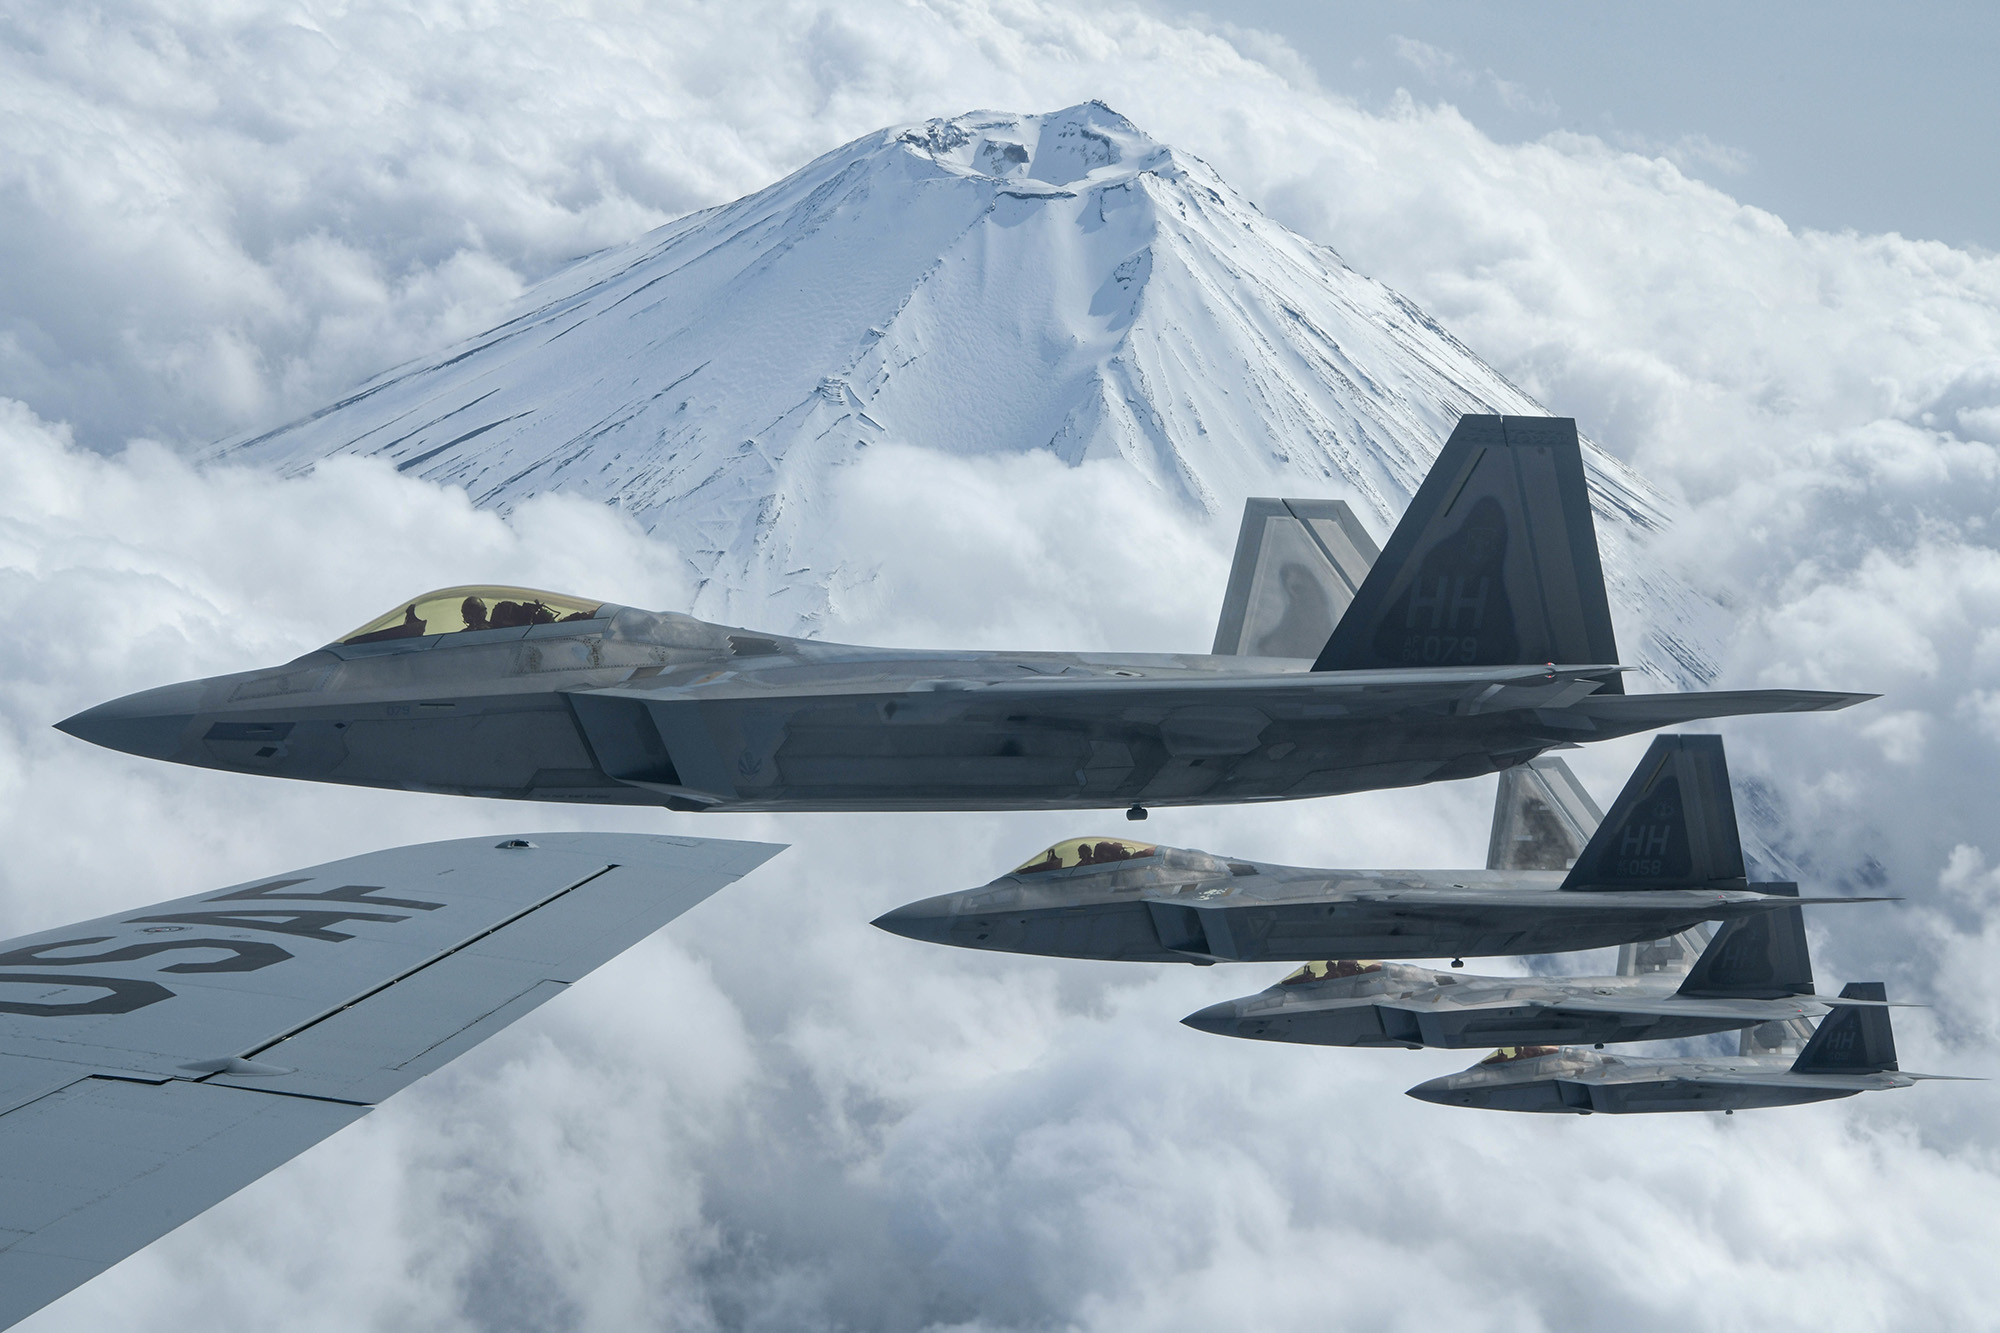 Four F-22 Raptors fly alongside a U.S. Air Force KC-135 Stratotanker during fifth-generation fighter training near Mount Fuji, Japan, April 1, 2021. (Senior Airman Rebeckah Medeiros/Air Force)